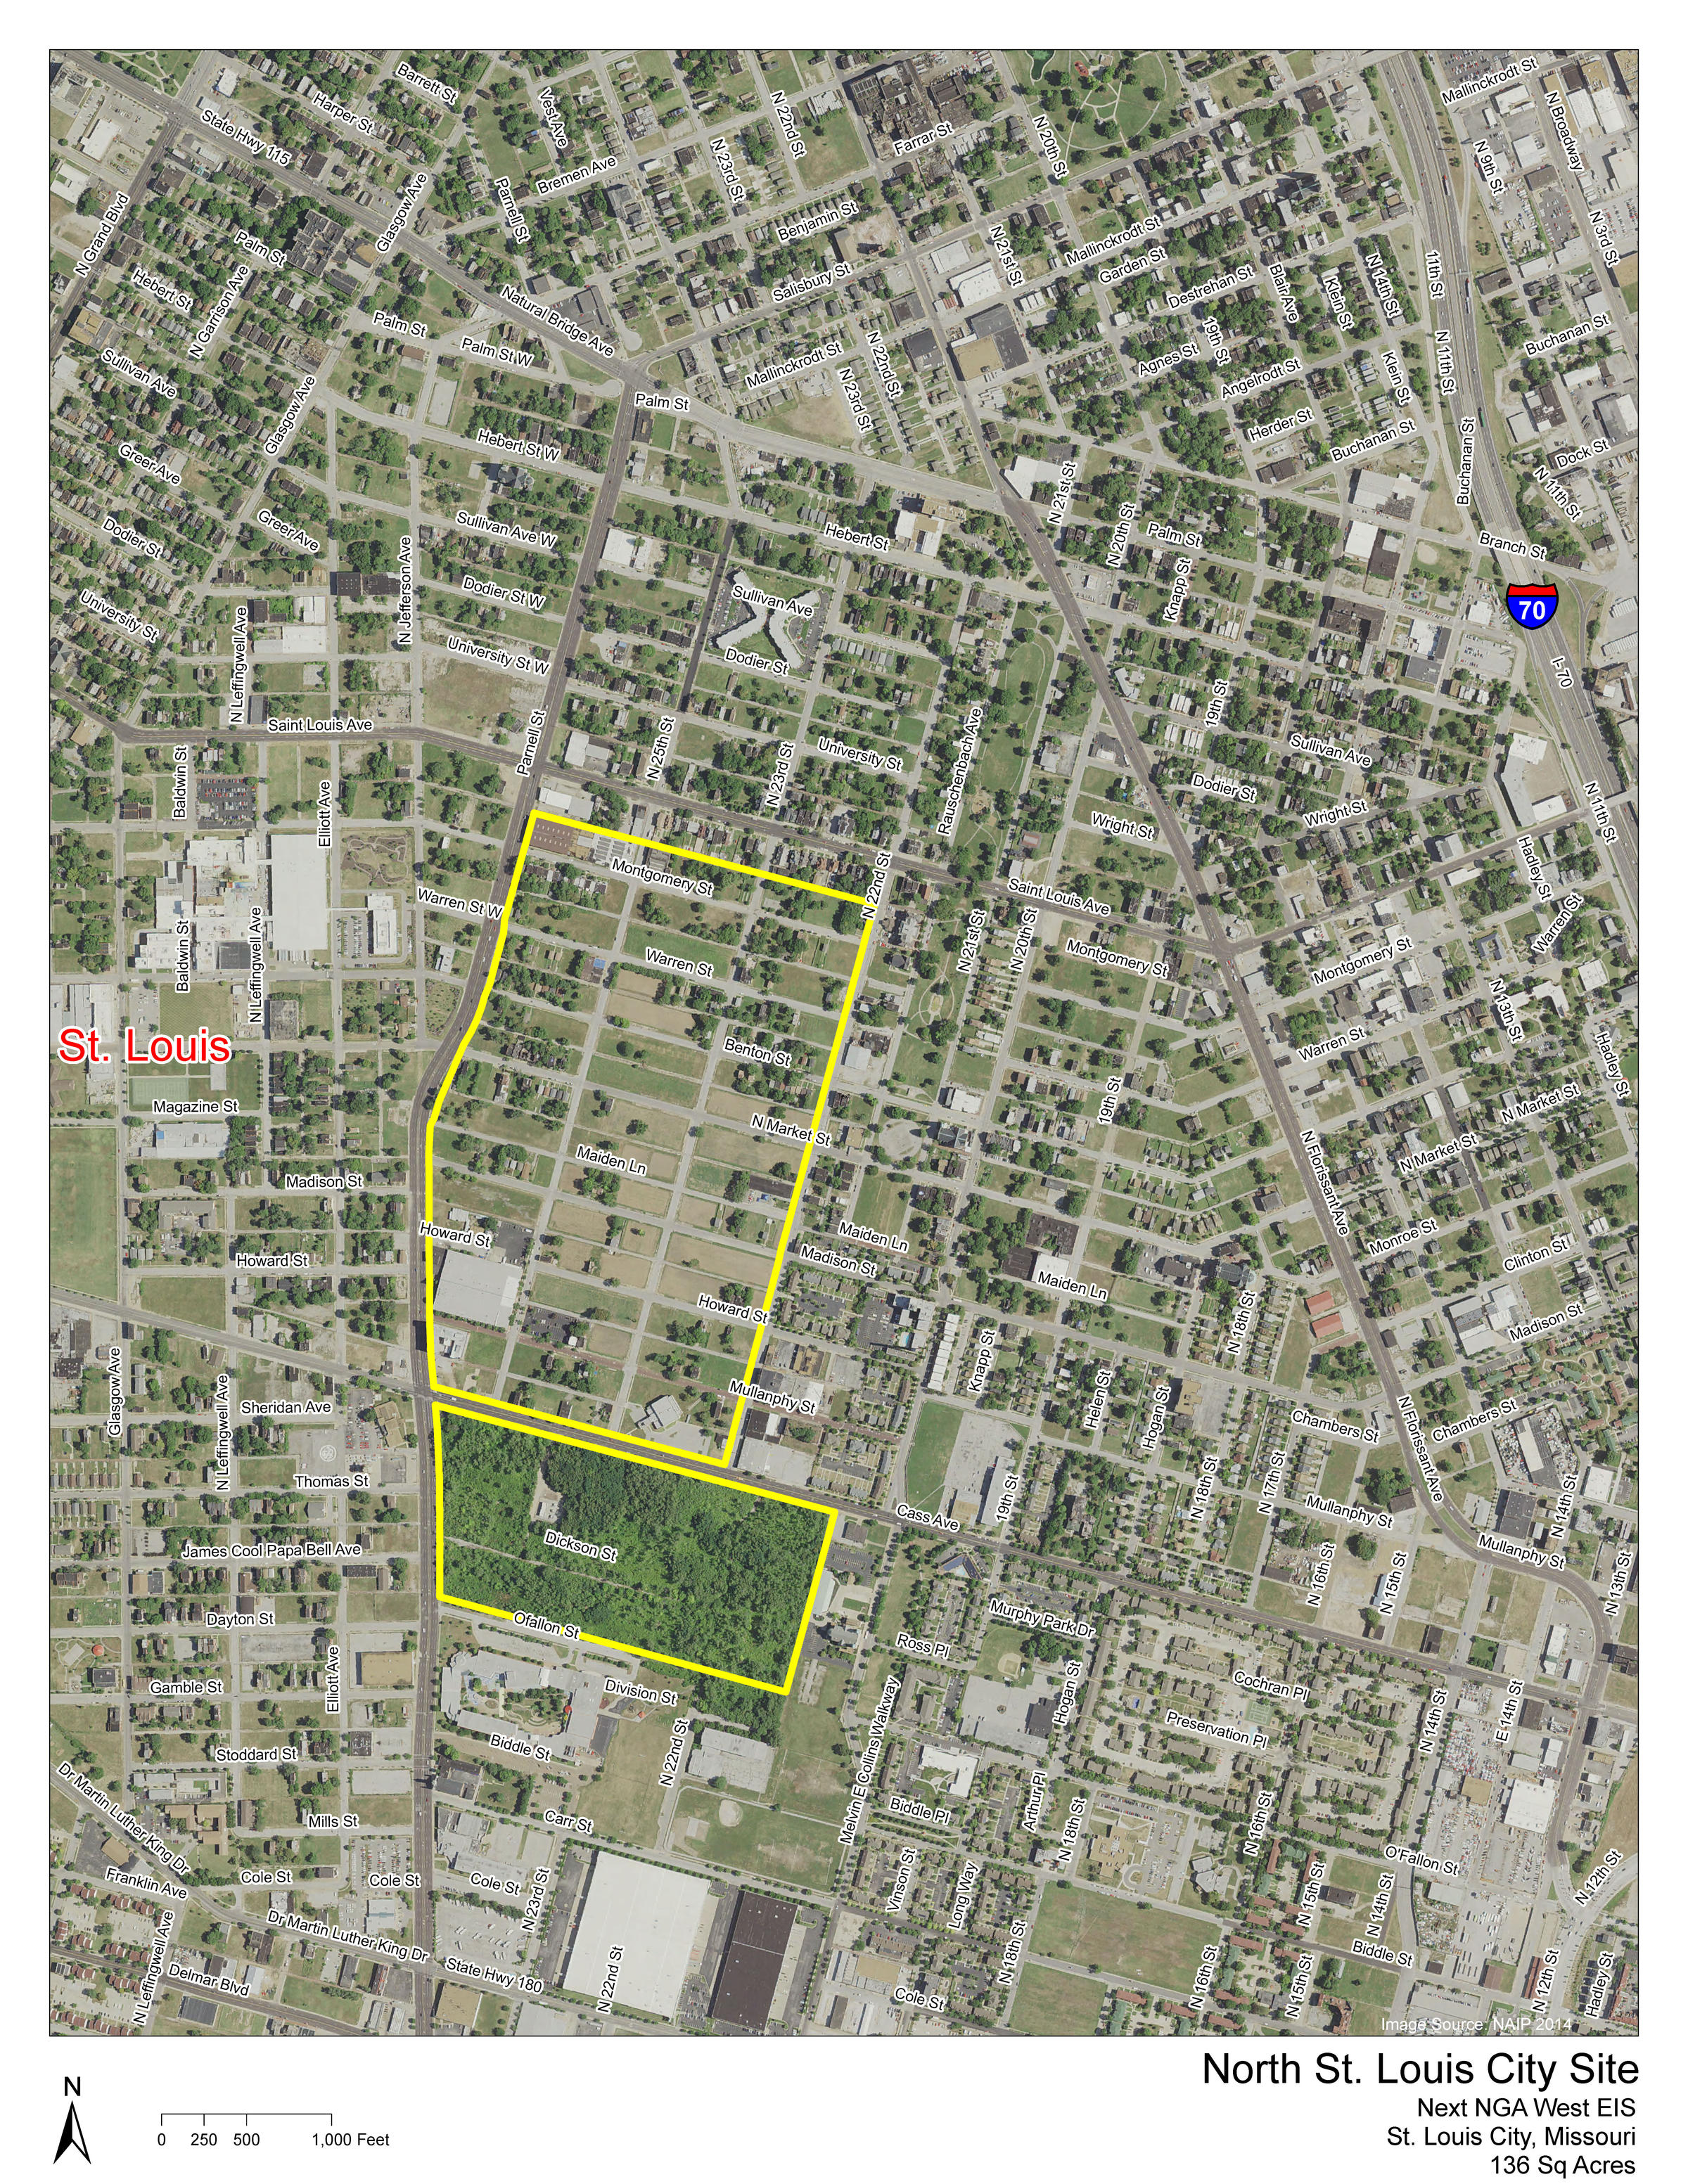 Pruitt Campus Map.St Louis Works To Keep Nga Not All Residents Approve St Louis